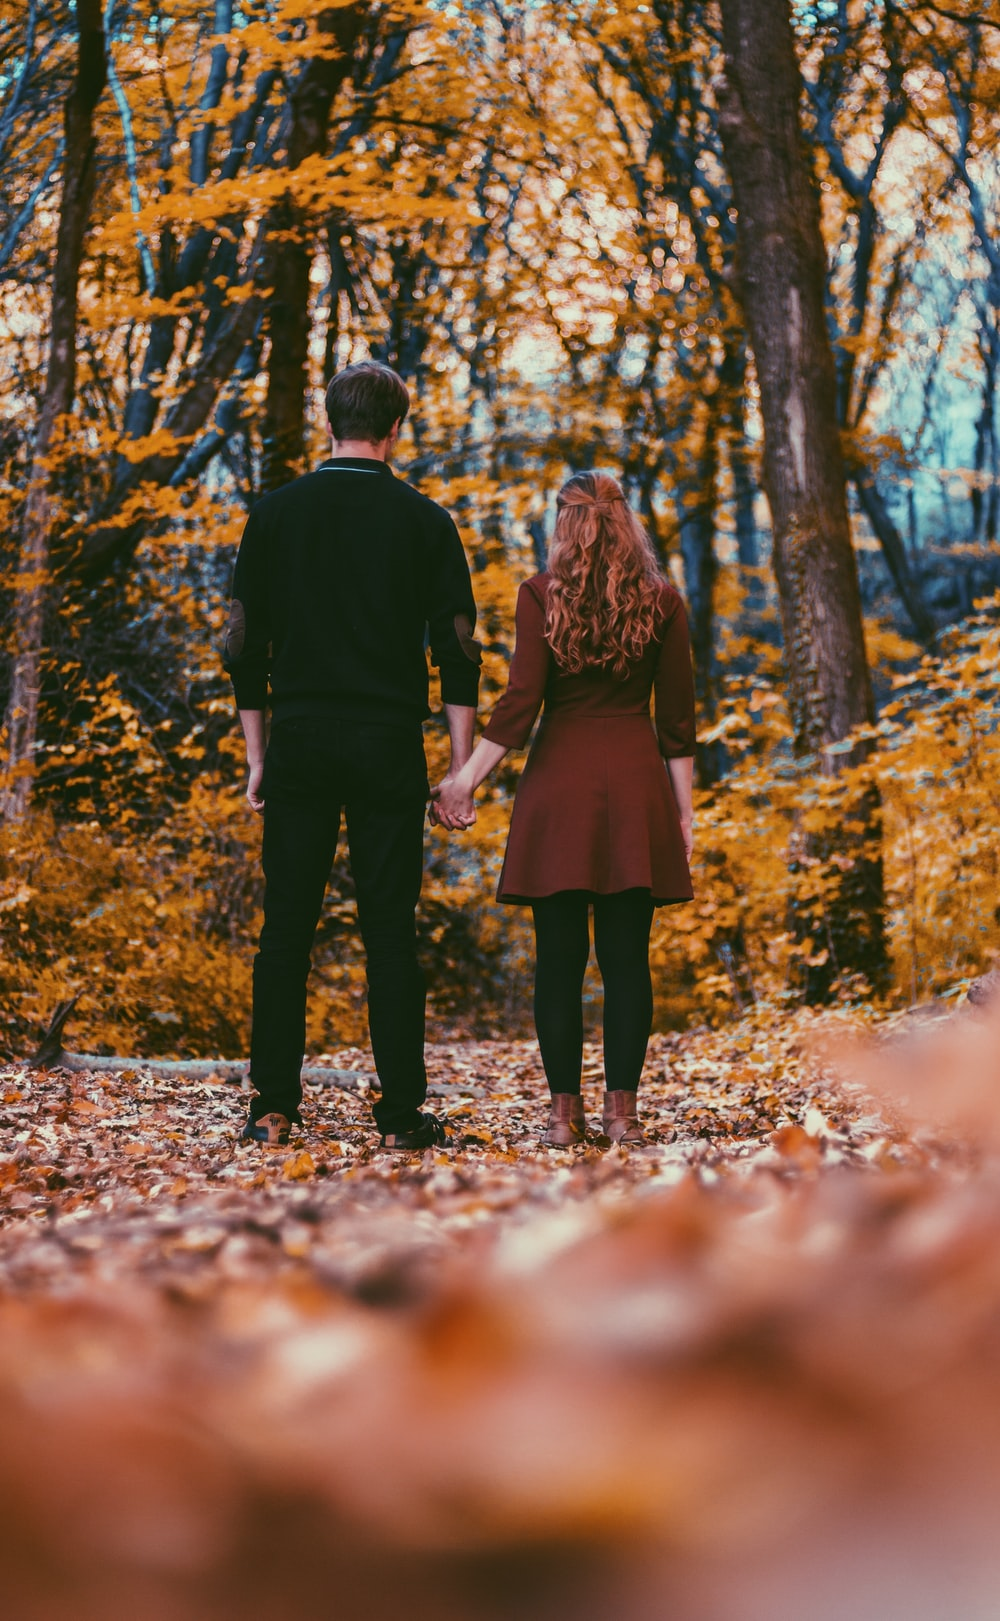 man in black long-sleeved shirt holding woman hand near trees during daytime